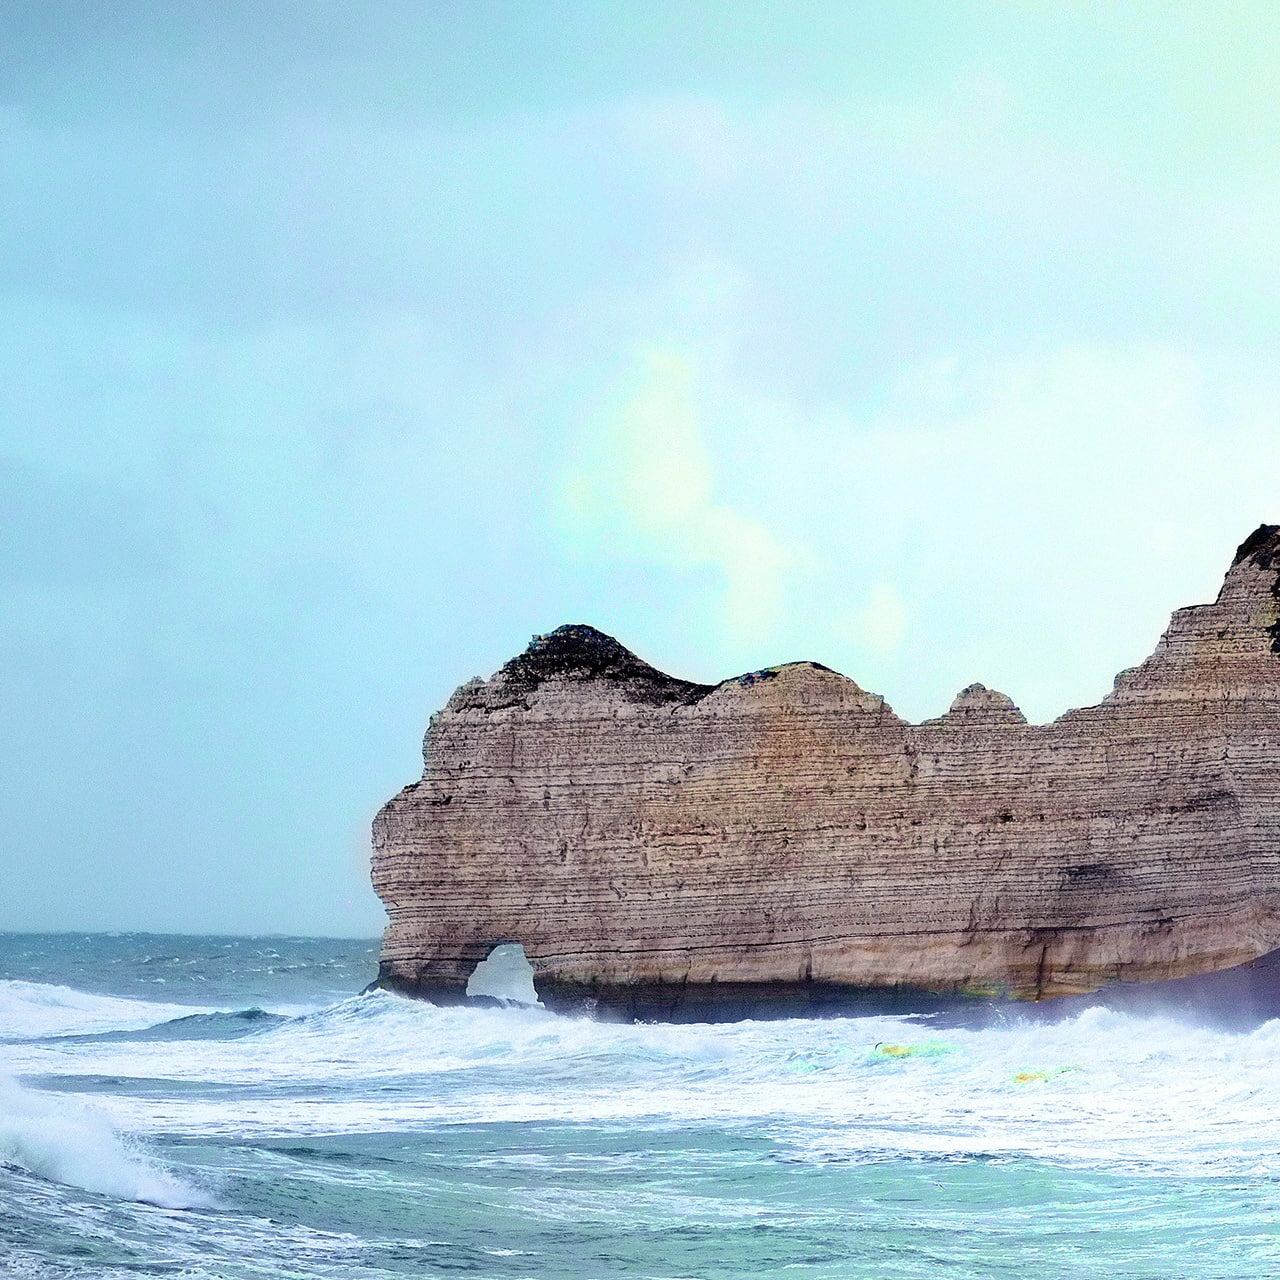 The Cliffs of Étretat with the natural arch jutting out into the Atlantic Ocean